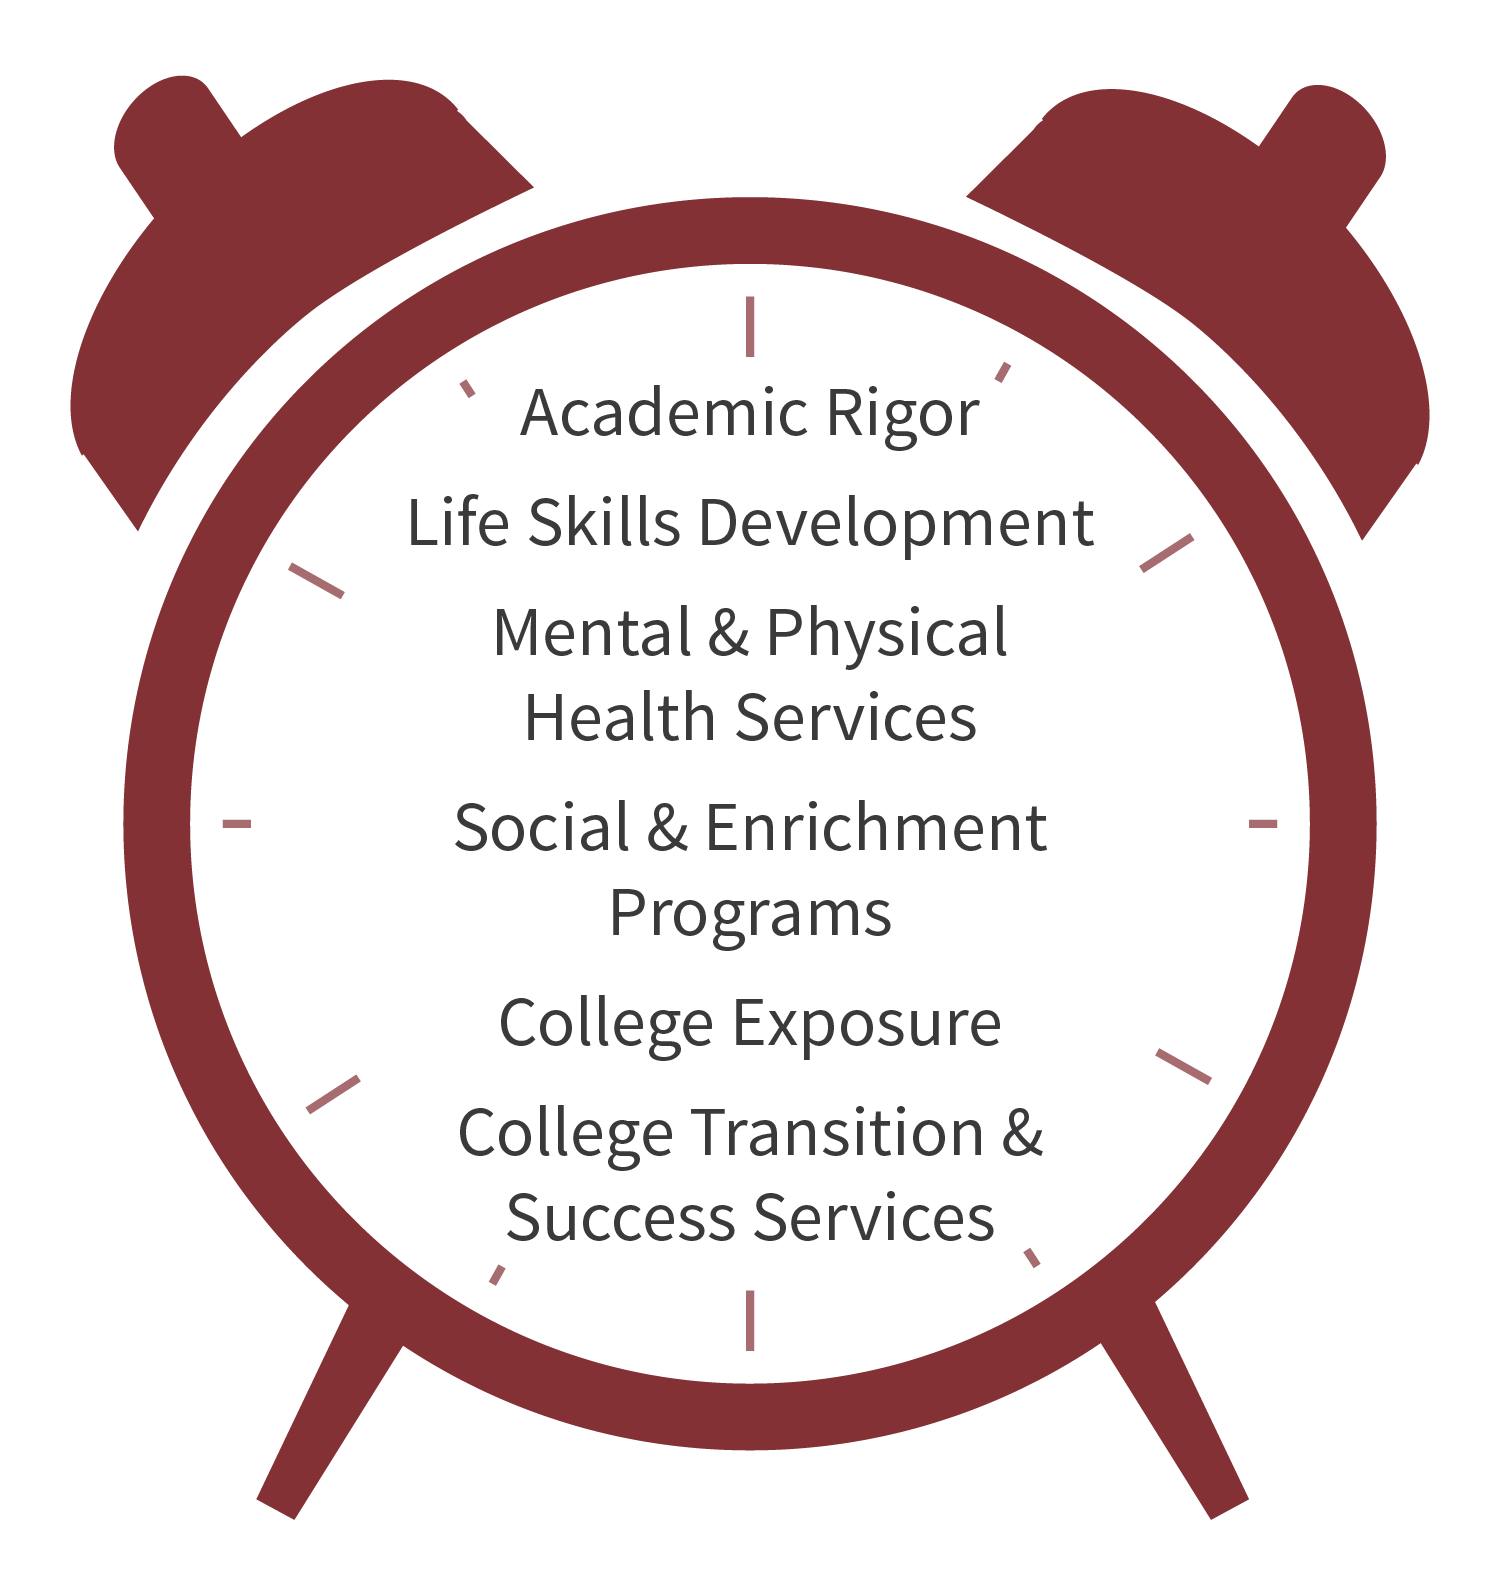 SEED's Holistic Model - We believe that some students need a 24-hour learning environment to achieve their full potential. Our holistic model brings a full suite of services--academic, social, emotional, physical and mental health services--under one roof and customized to meet each student's needs.